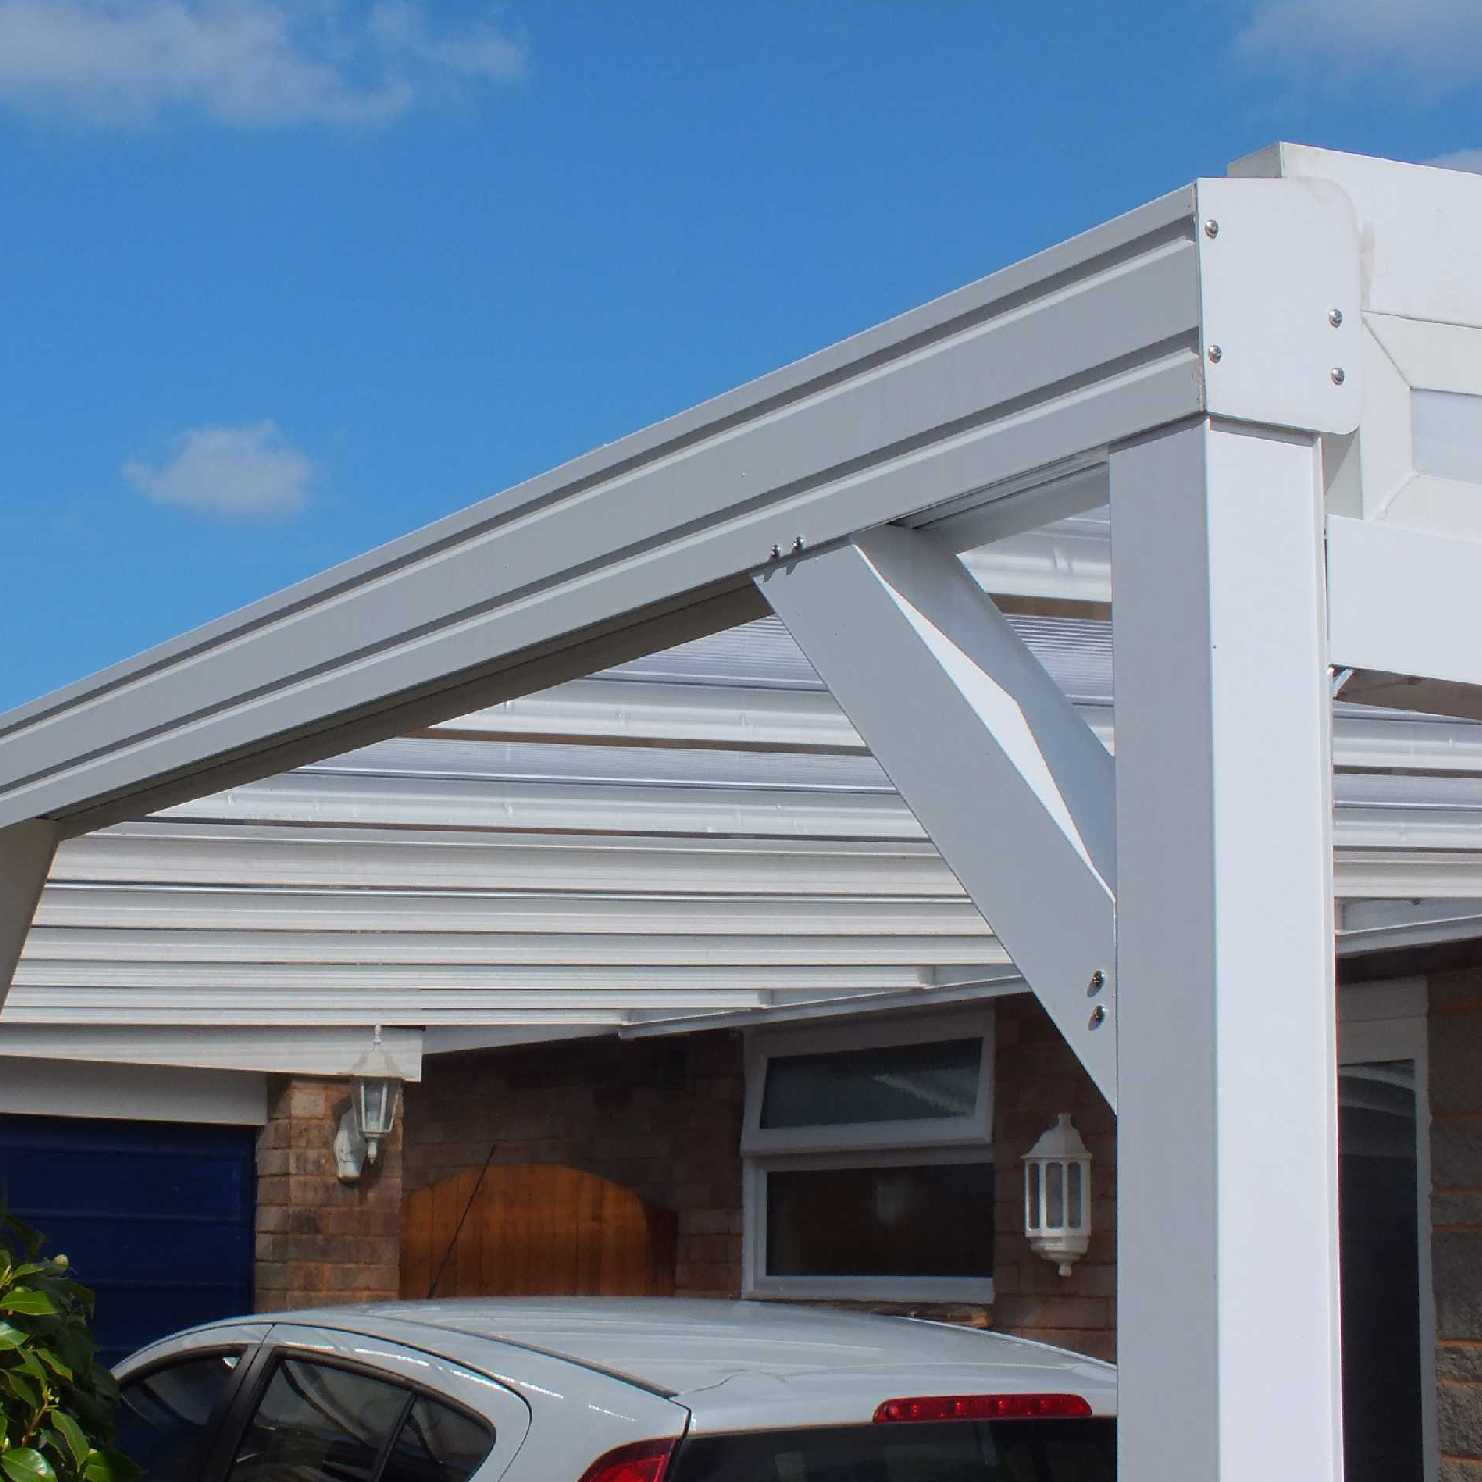 Great deals on Omega Smart Lean-To Canopy with 16mm Polycarbonate Glazing - 9.5m (W) x 2.5m (P), (5) Supporting Posts